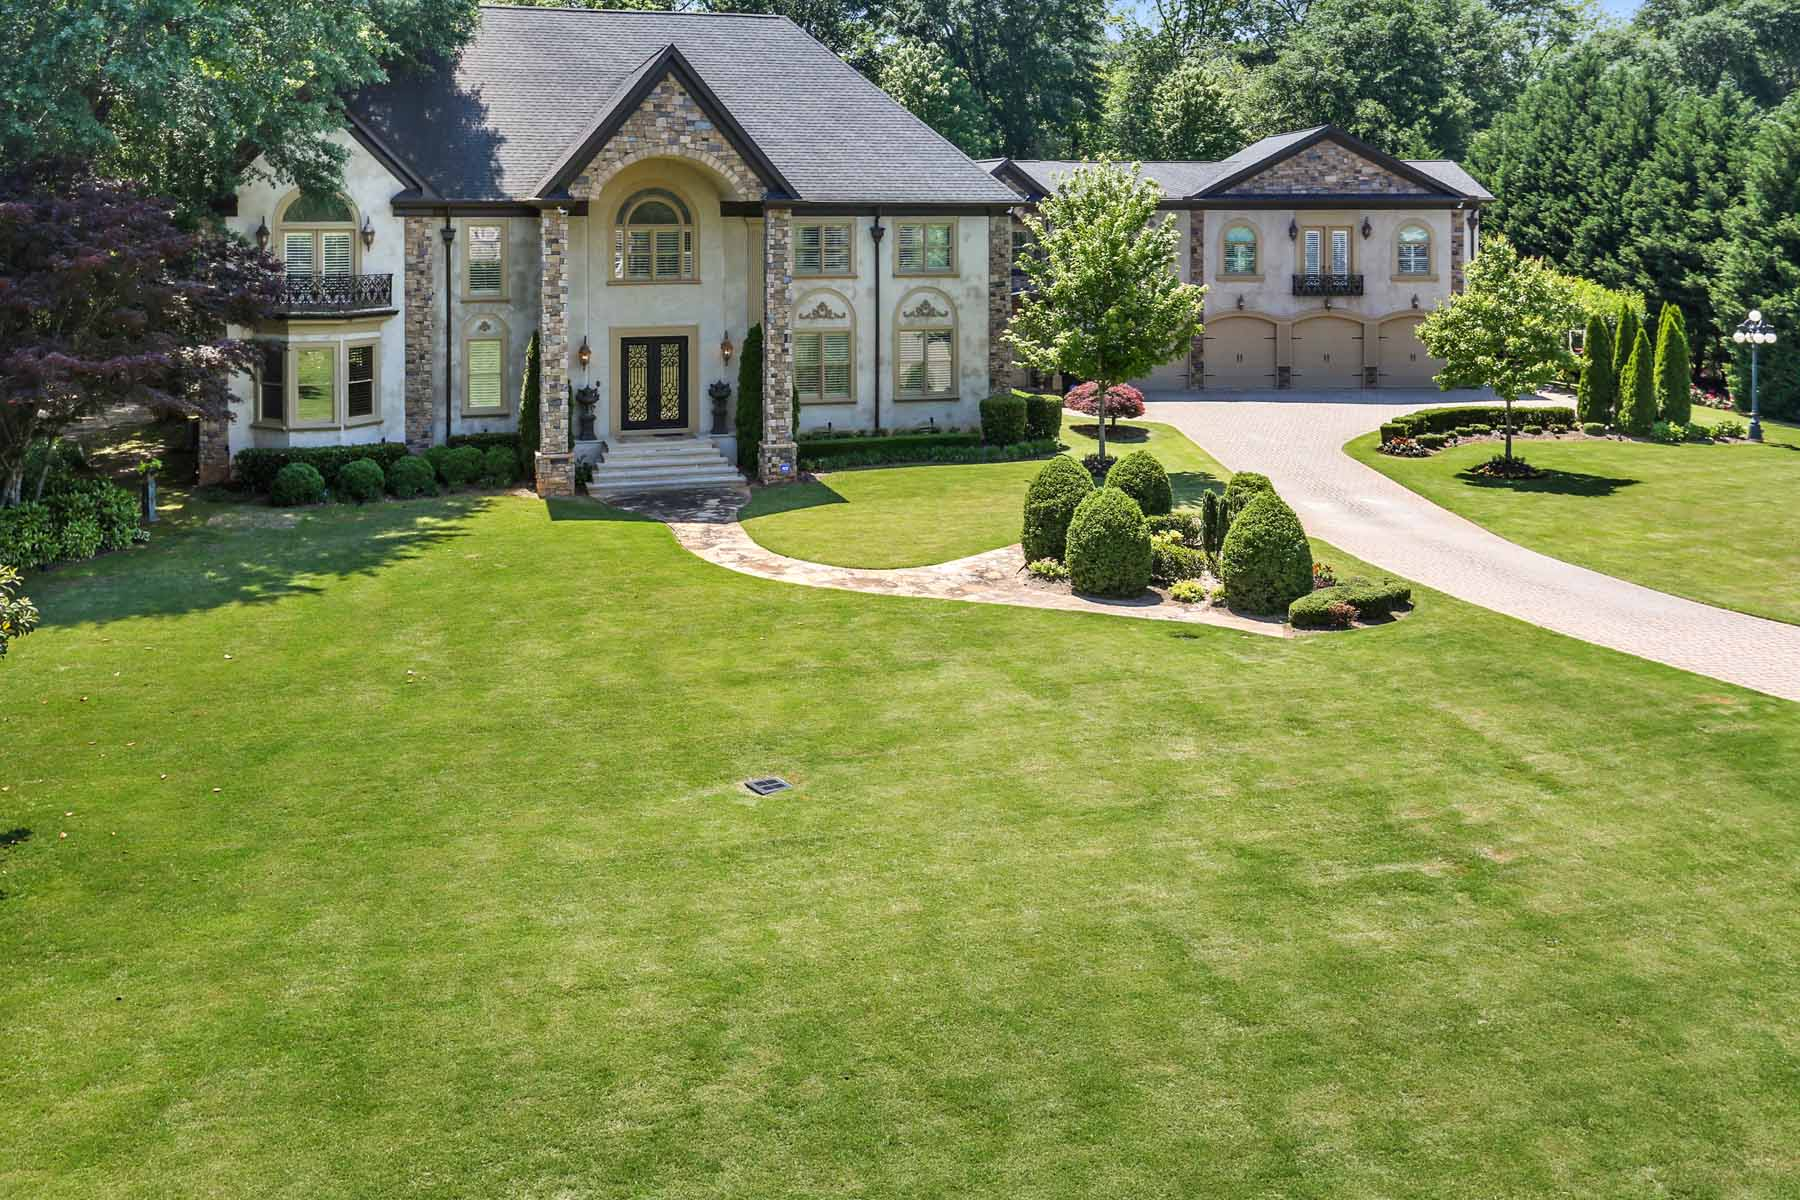 Villa per Vendita alle ore Extraordinary Sprawling Estate on Chattahoochee River 5315 Chelsen Wood Drive Johns Creek, Georgia 30097 Stati Uniti